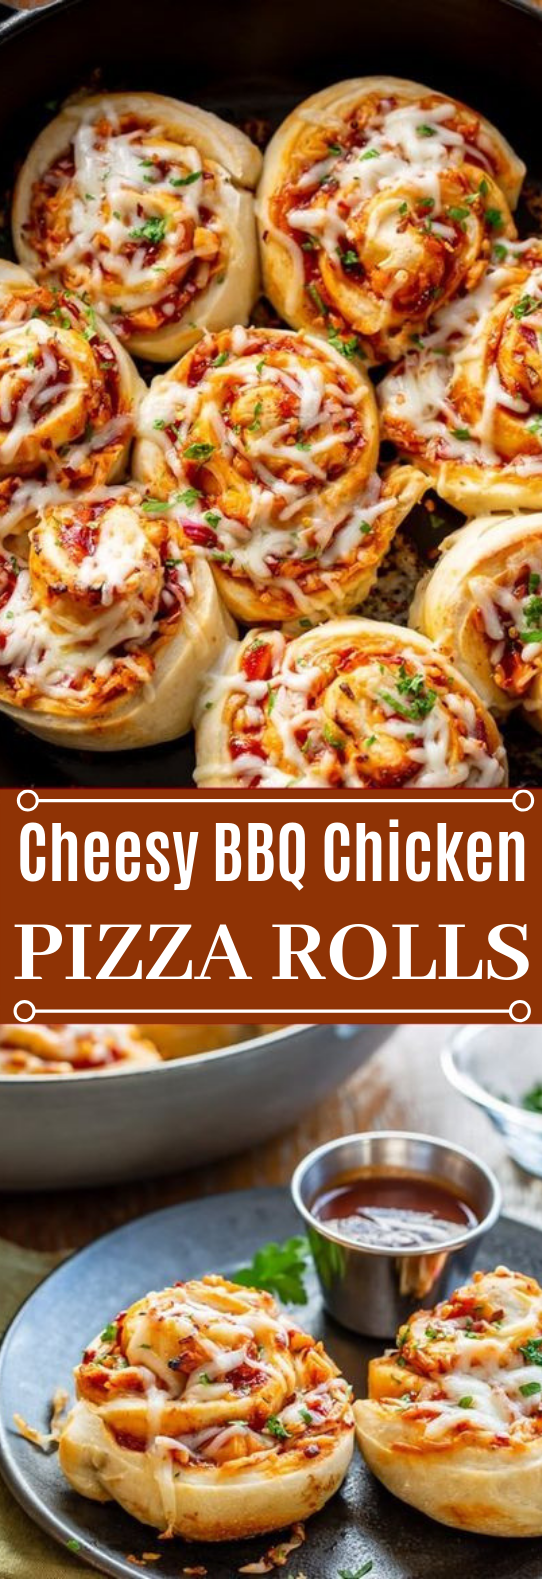 Cheesy BBQ Chicken Pizza Rolls #appetizers #pizza